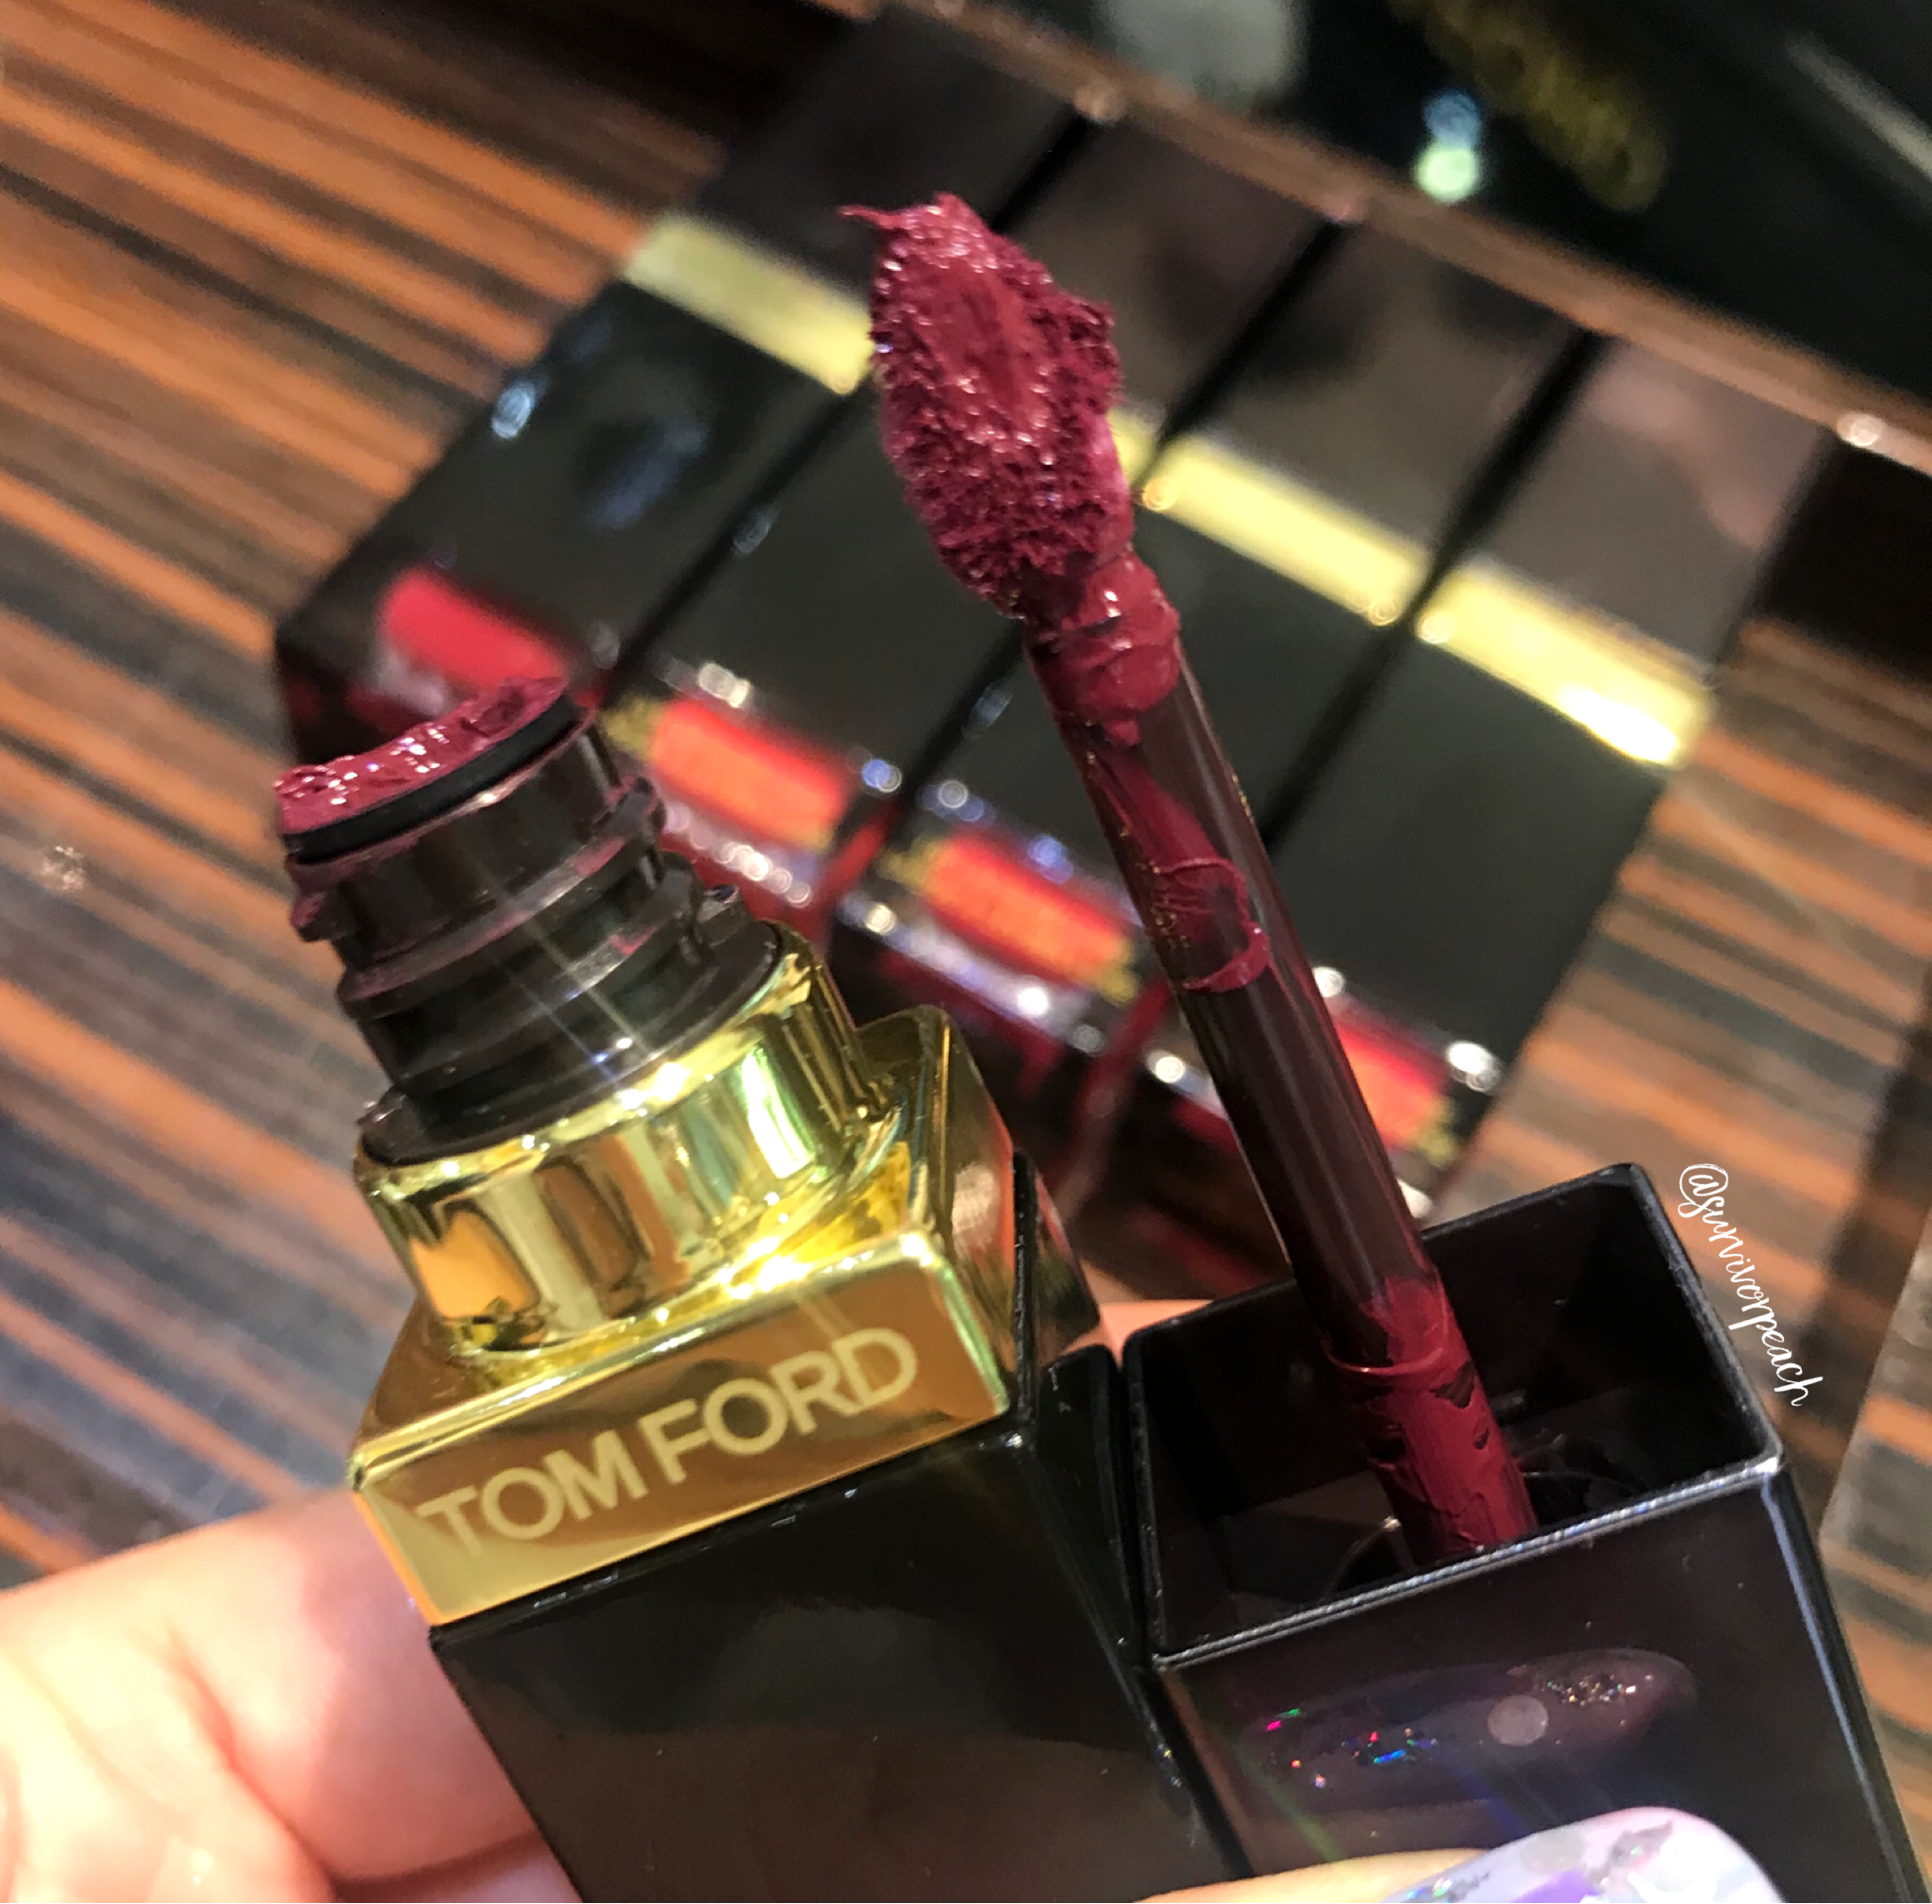 Tomford Lip Lacquer Luxe Matte in shade 10 Beau Jolais